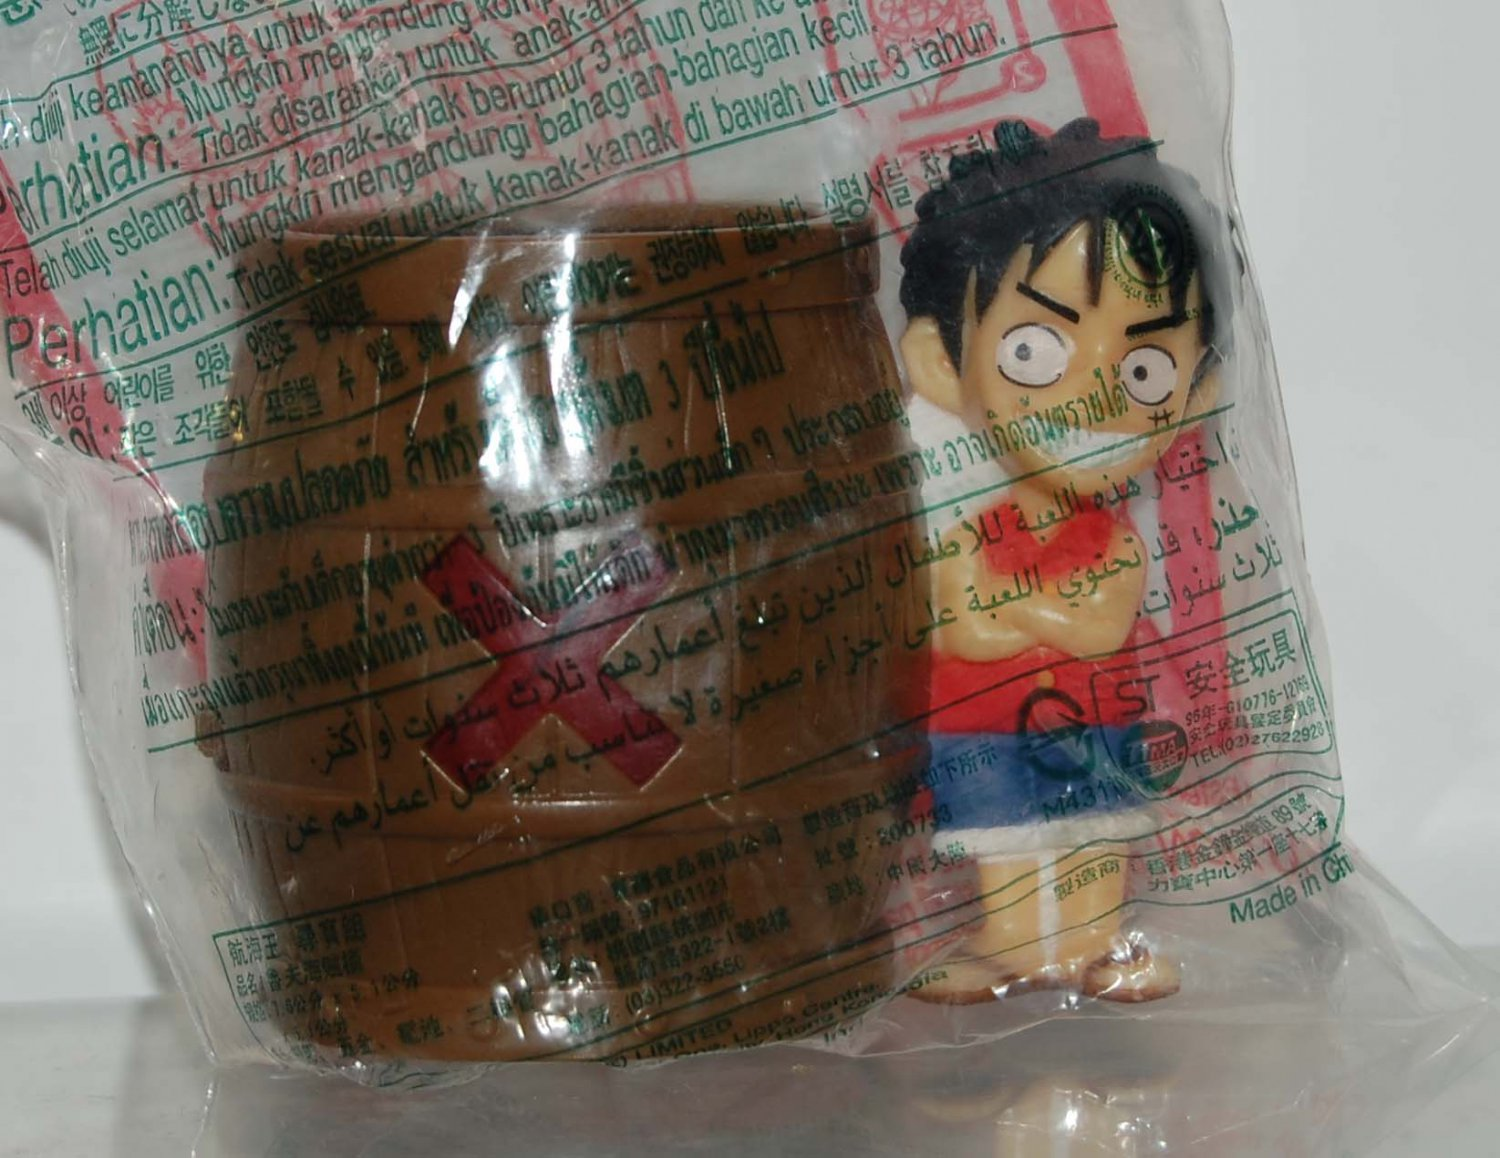 2008 McDonald's Happy Meal Toy One Piece - Luffy's Treasure Explorer